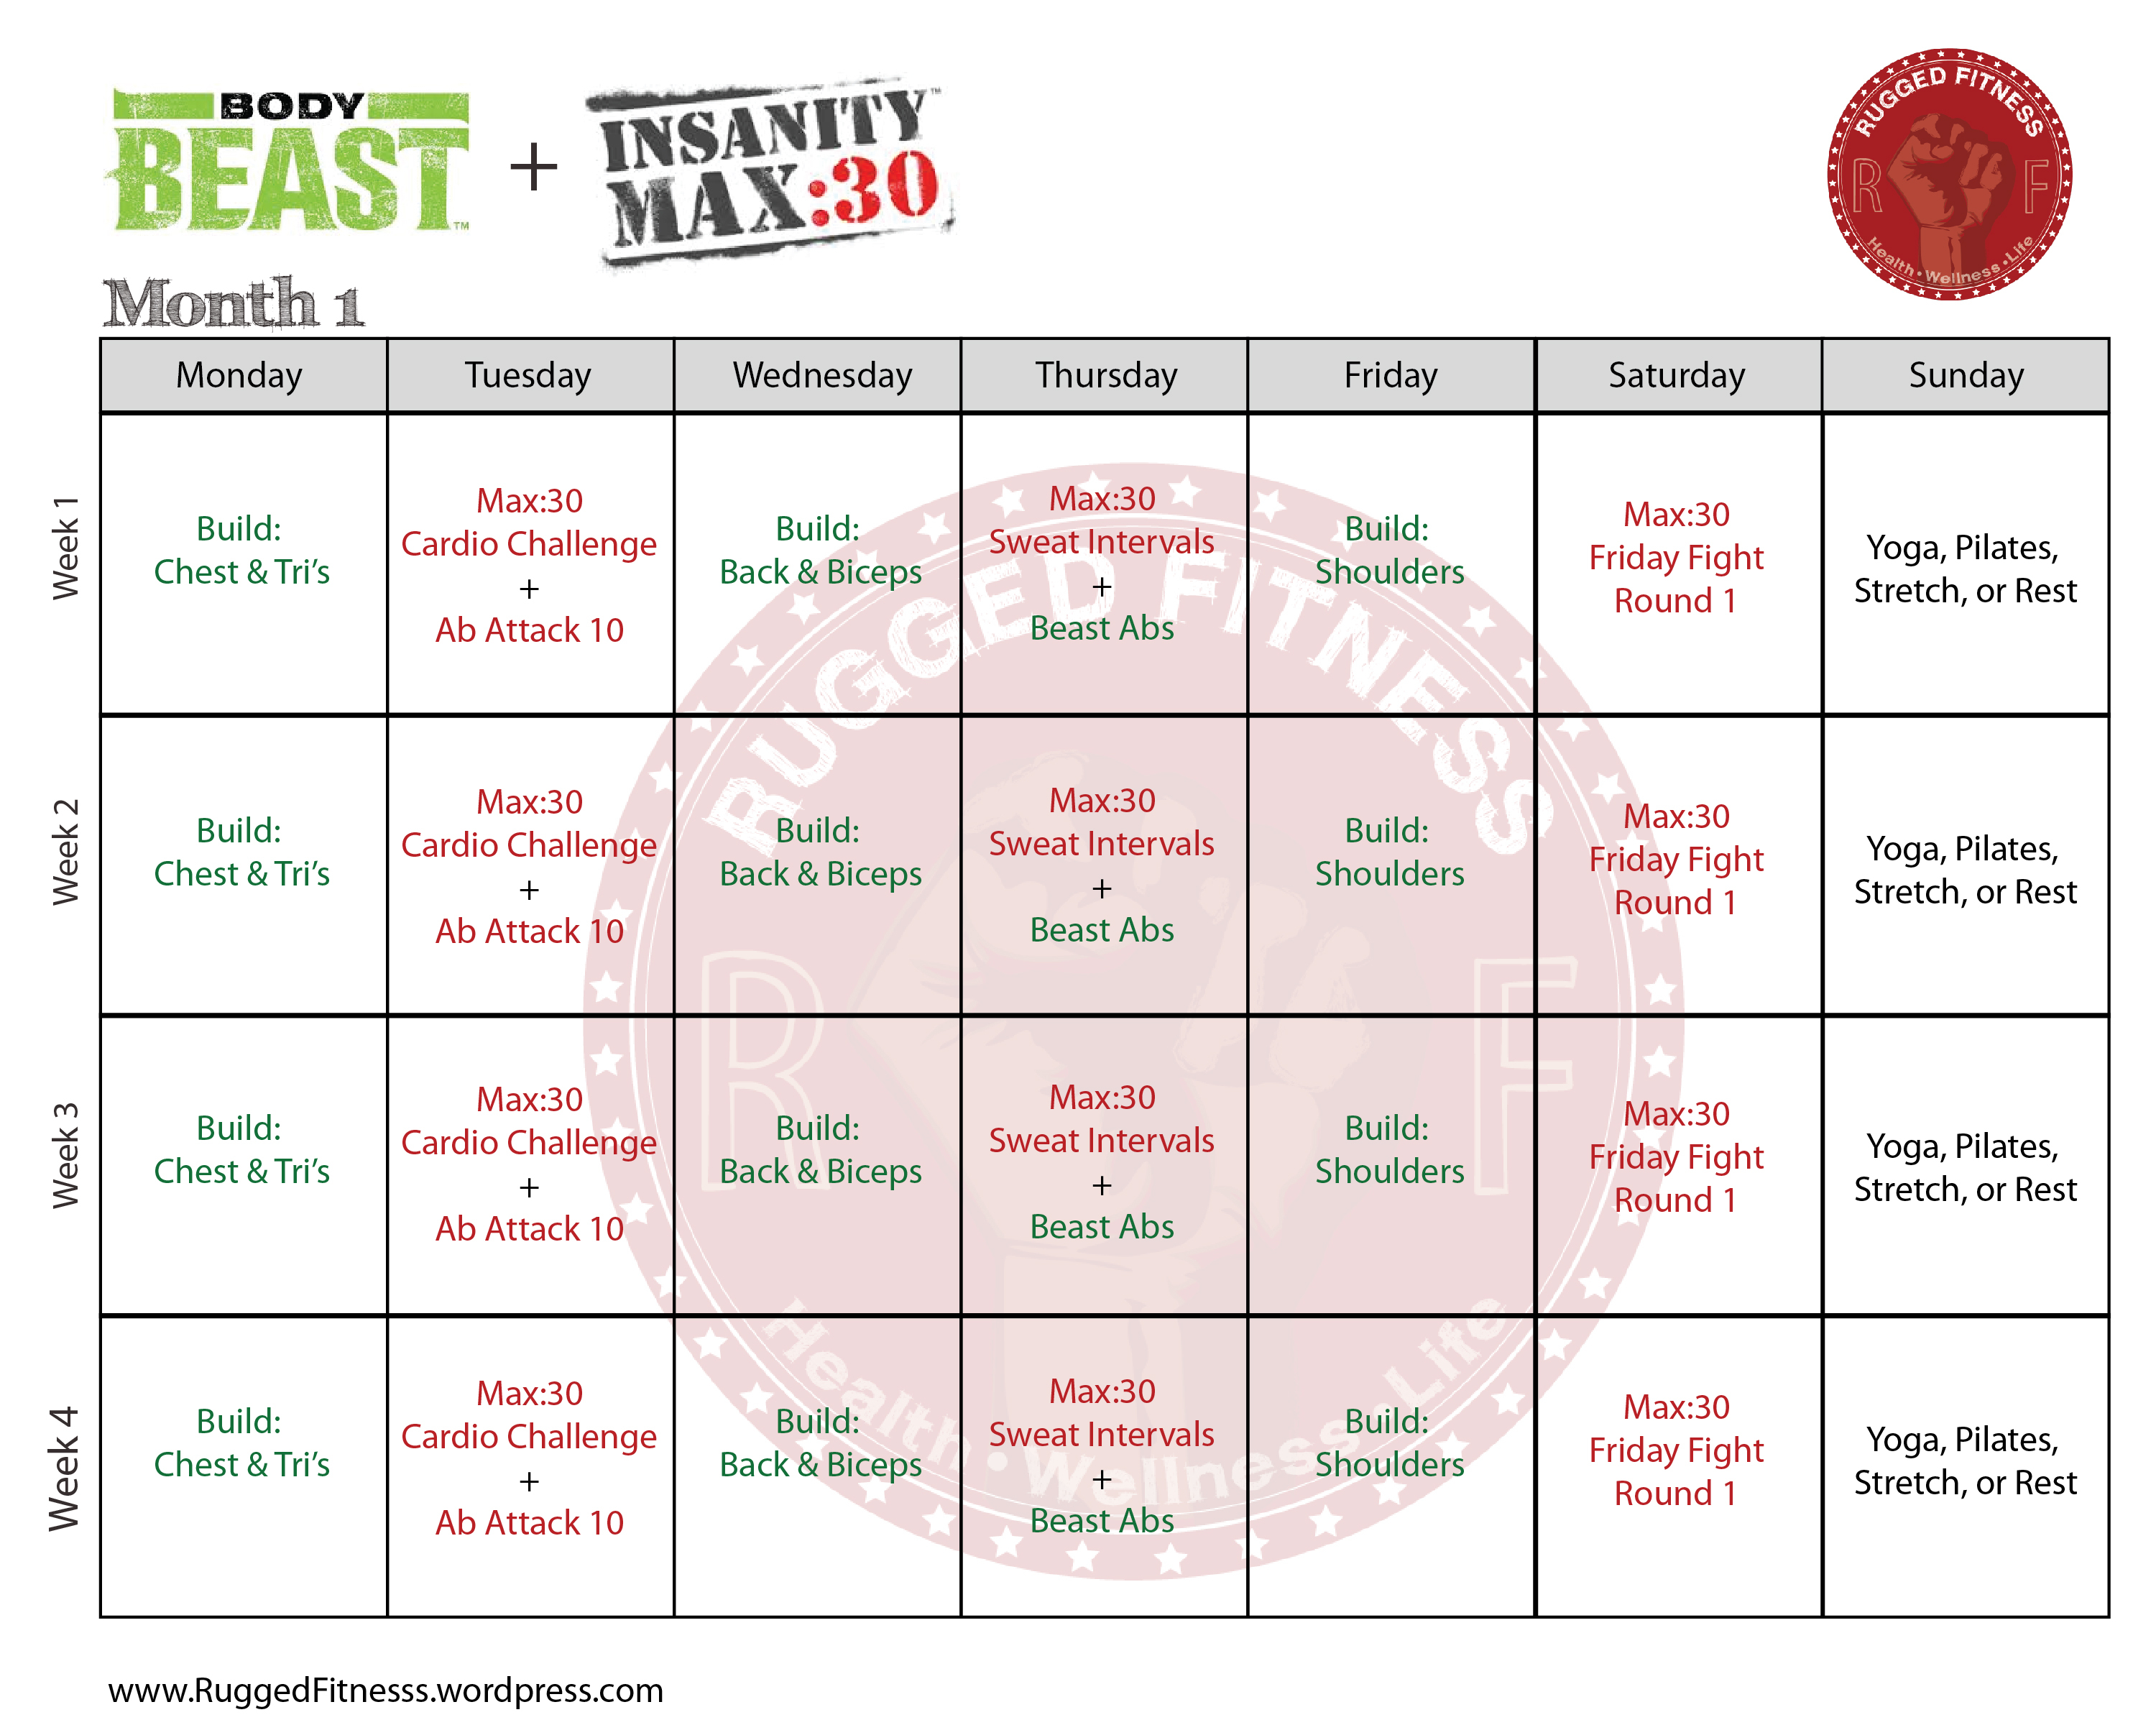 Body Beast + Insanity: Max 30 Hybrid Schedule | Rugged Fitnesss intended for Body Beast Hybrid